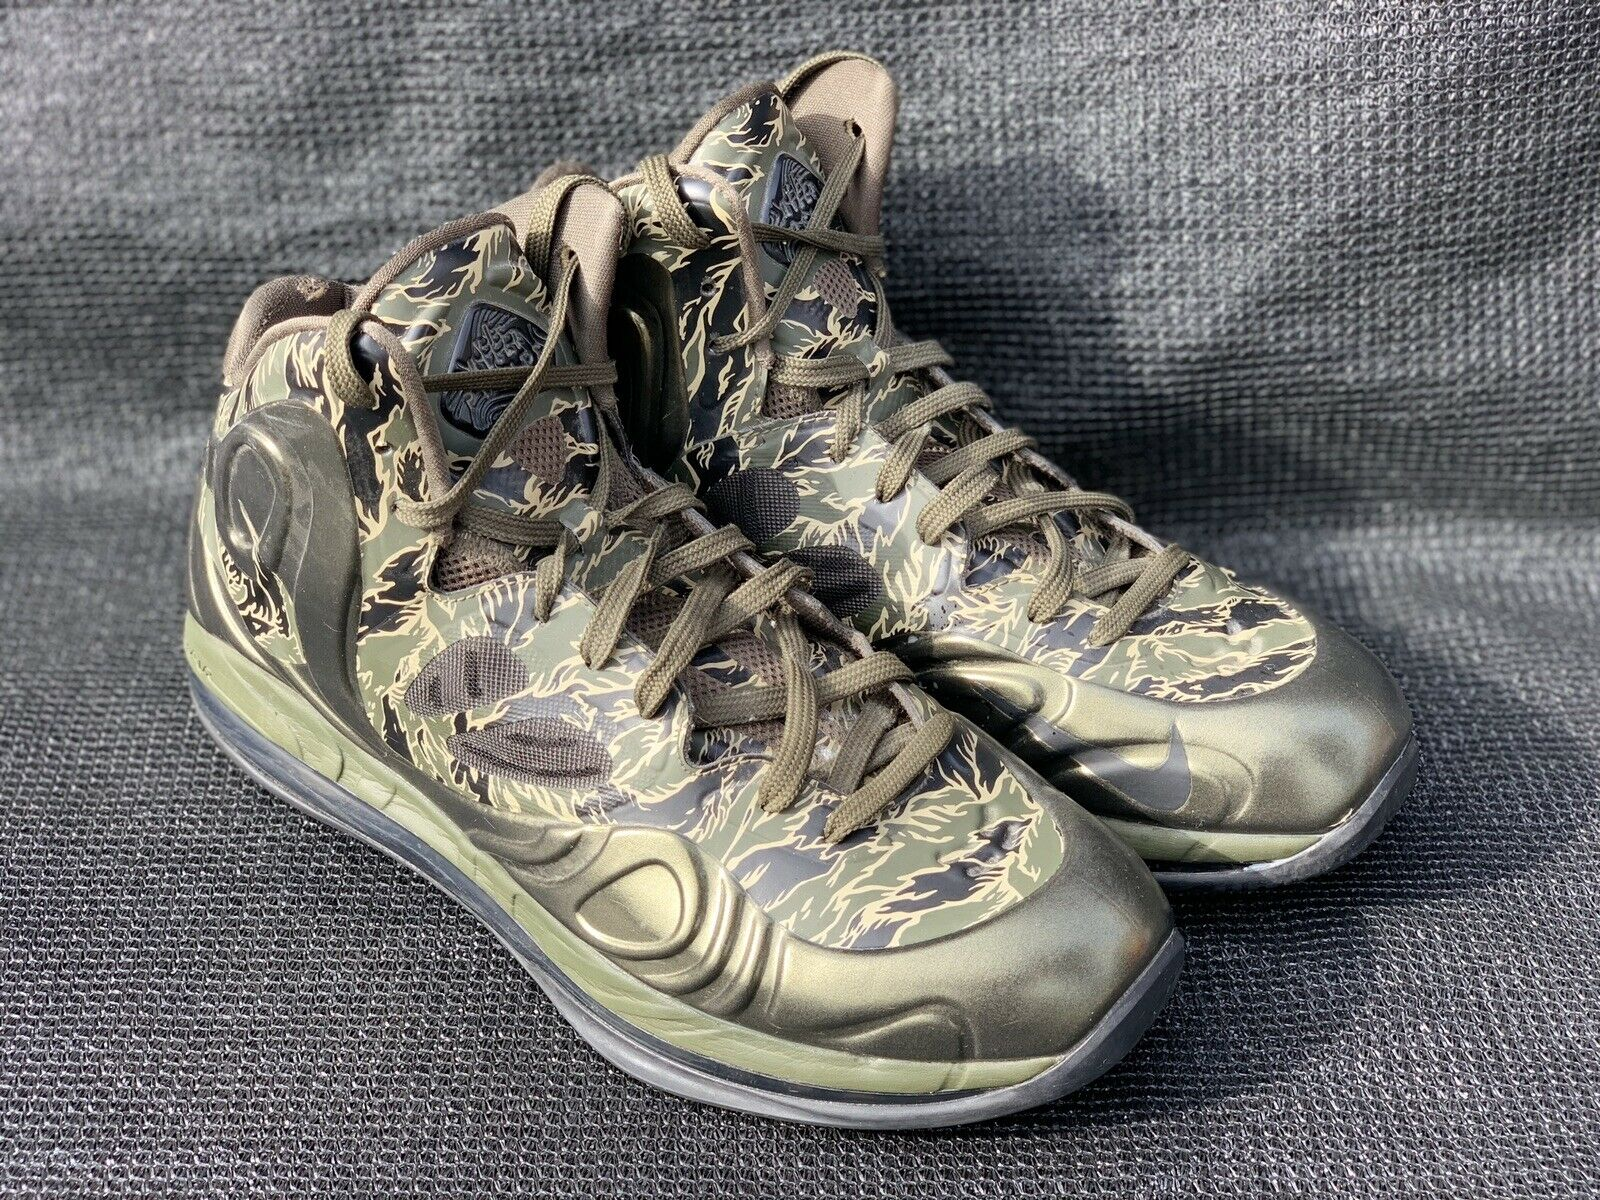 on sale ab255 c34d2 Nike Air Max Hyperposite Tiger Camo shoes RARE Men s 11 11 11 US 524862-300  7208f6